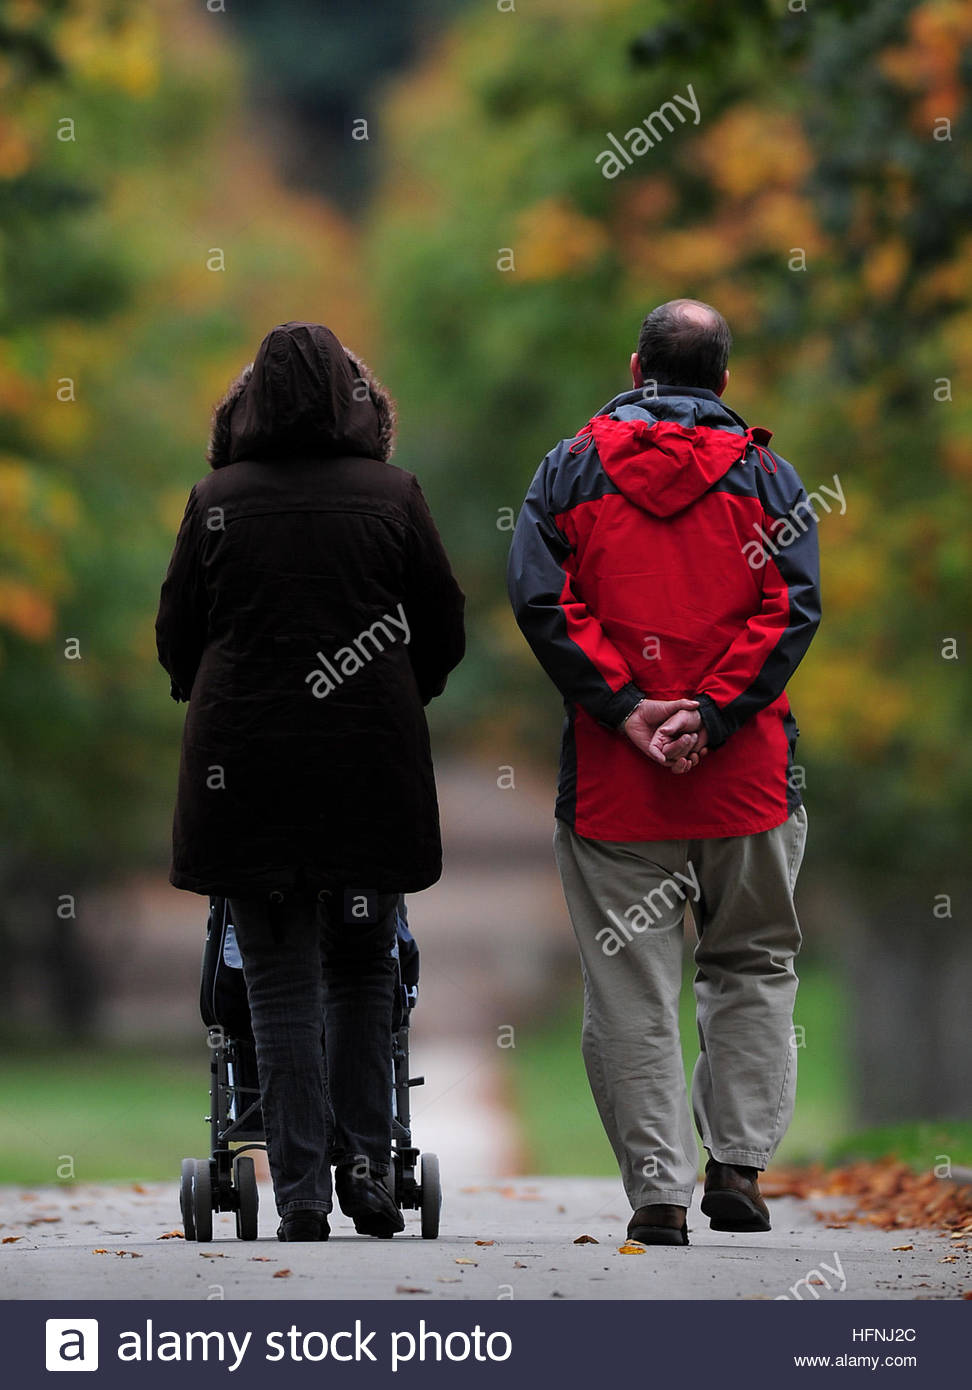 File photo dated 13/10/10 of a family going for a walk in Wollaton Park in Nottingham, as spending time with family Stock Photo